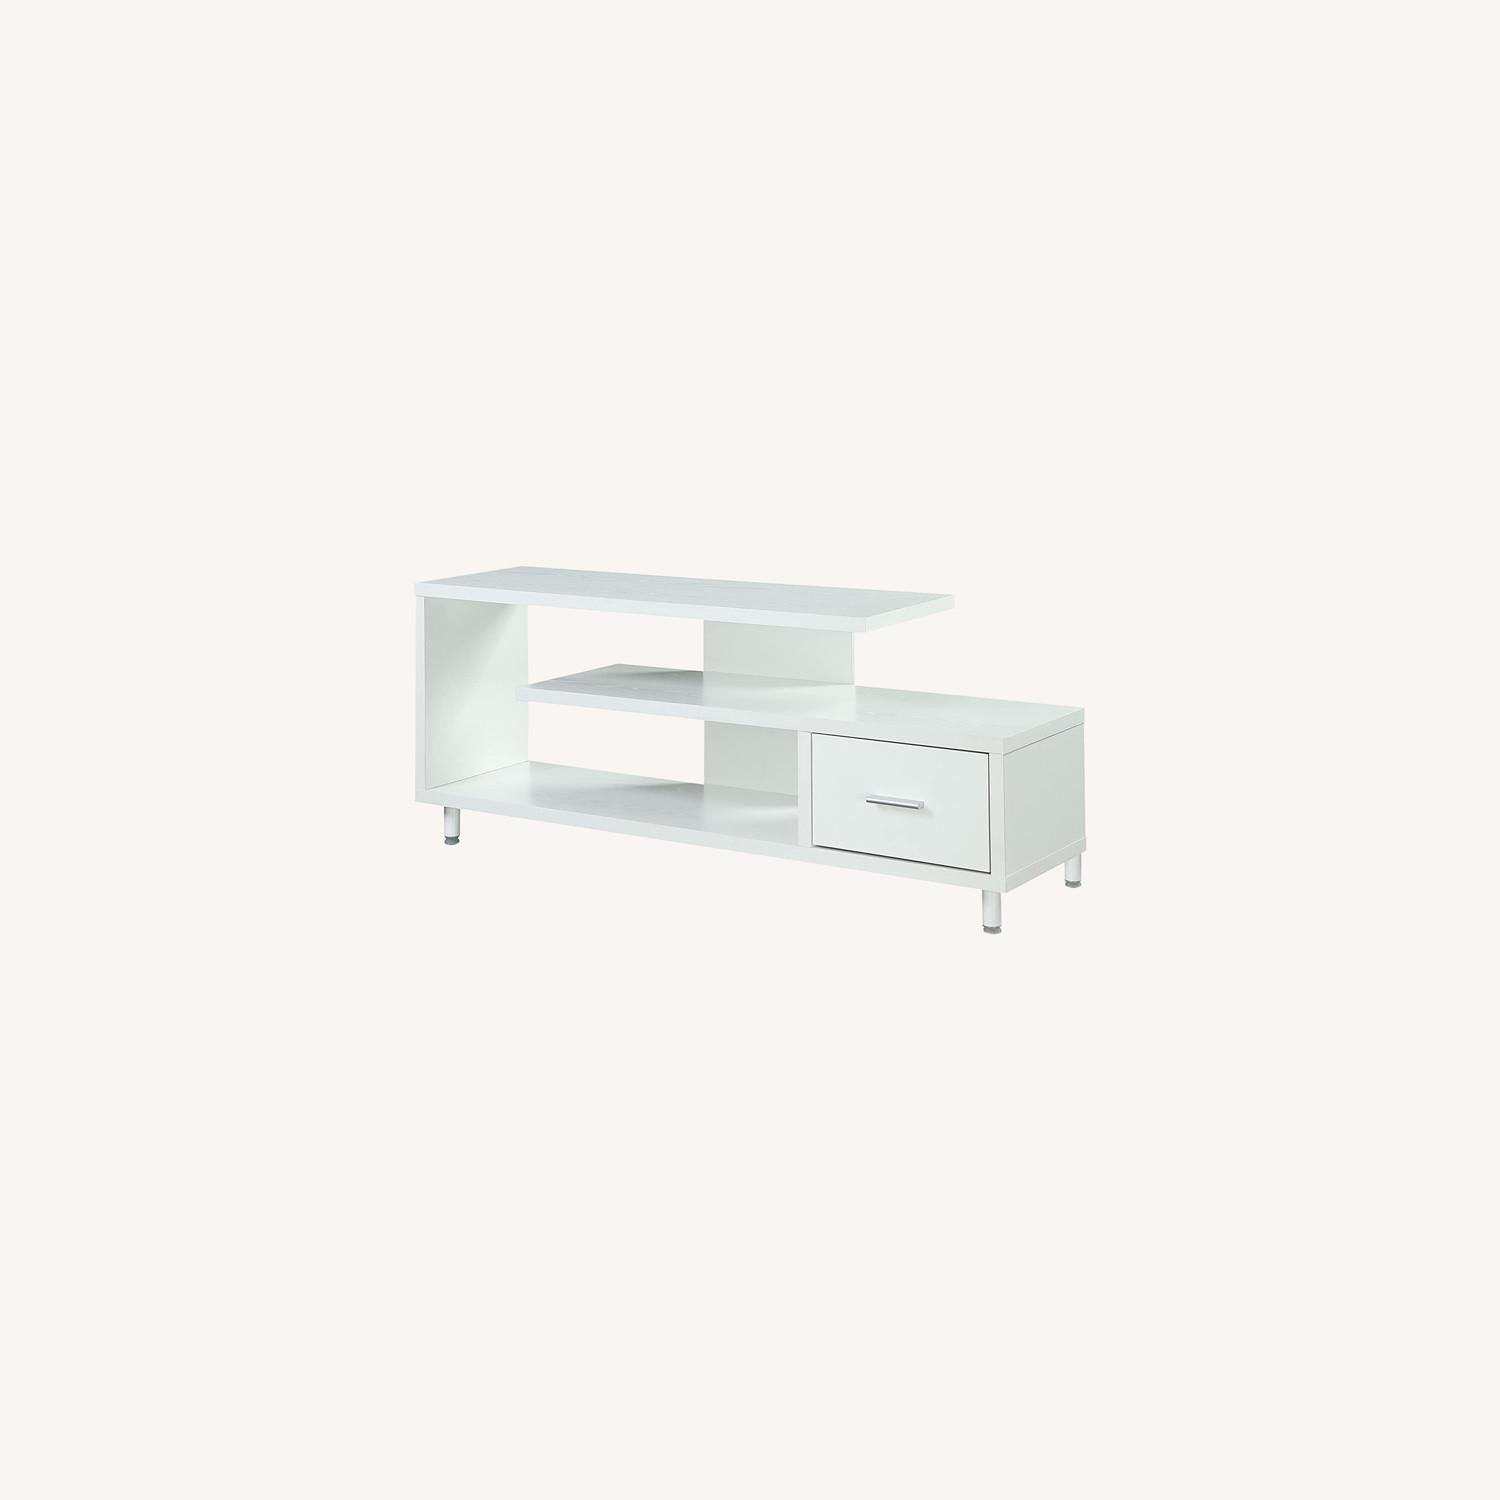 "Convenience Concepts Modern 60"" TV Stand White - image-0"